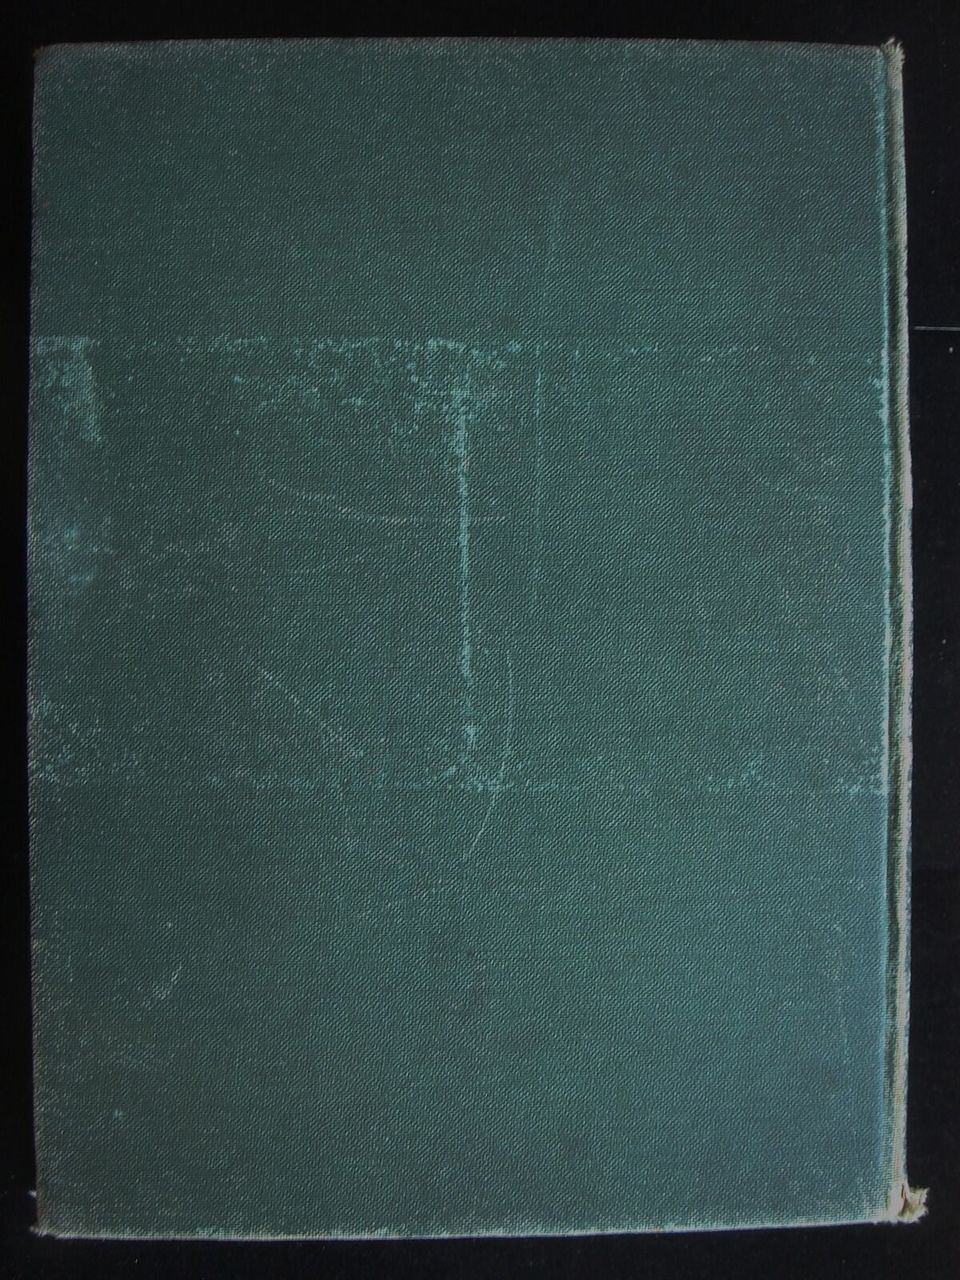 HISTORY OF ITALIAN FURNITURE - 1918 [Signed] 14th to Early 19th C Wood Artisans